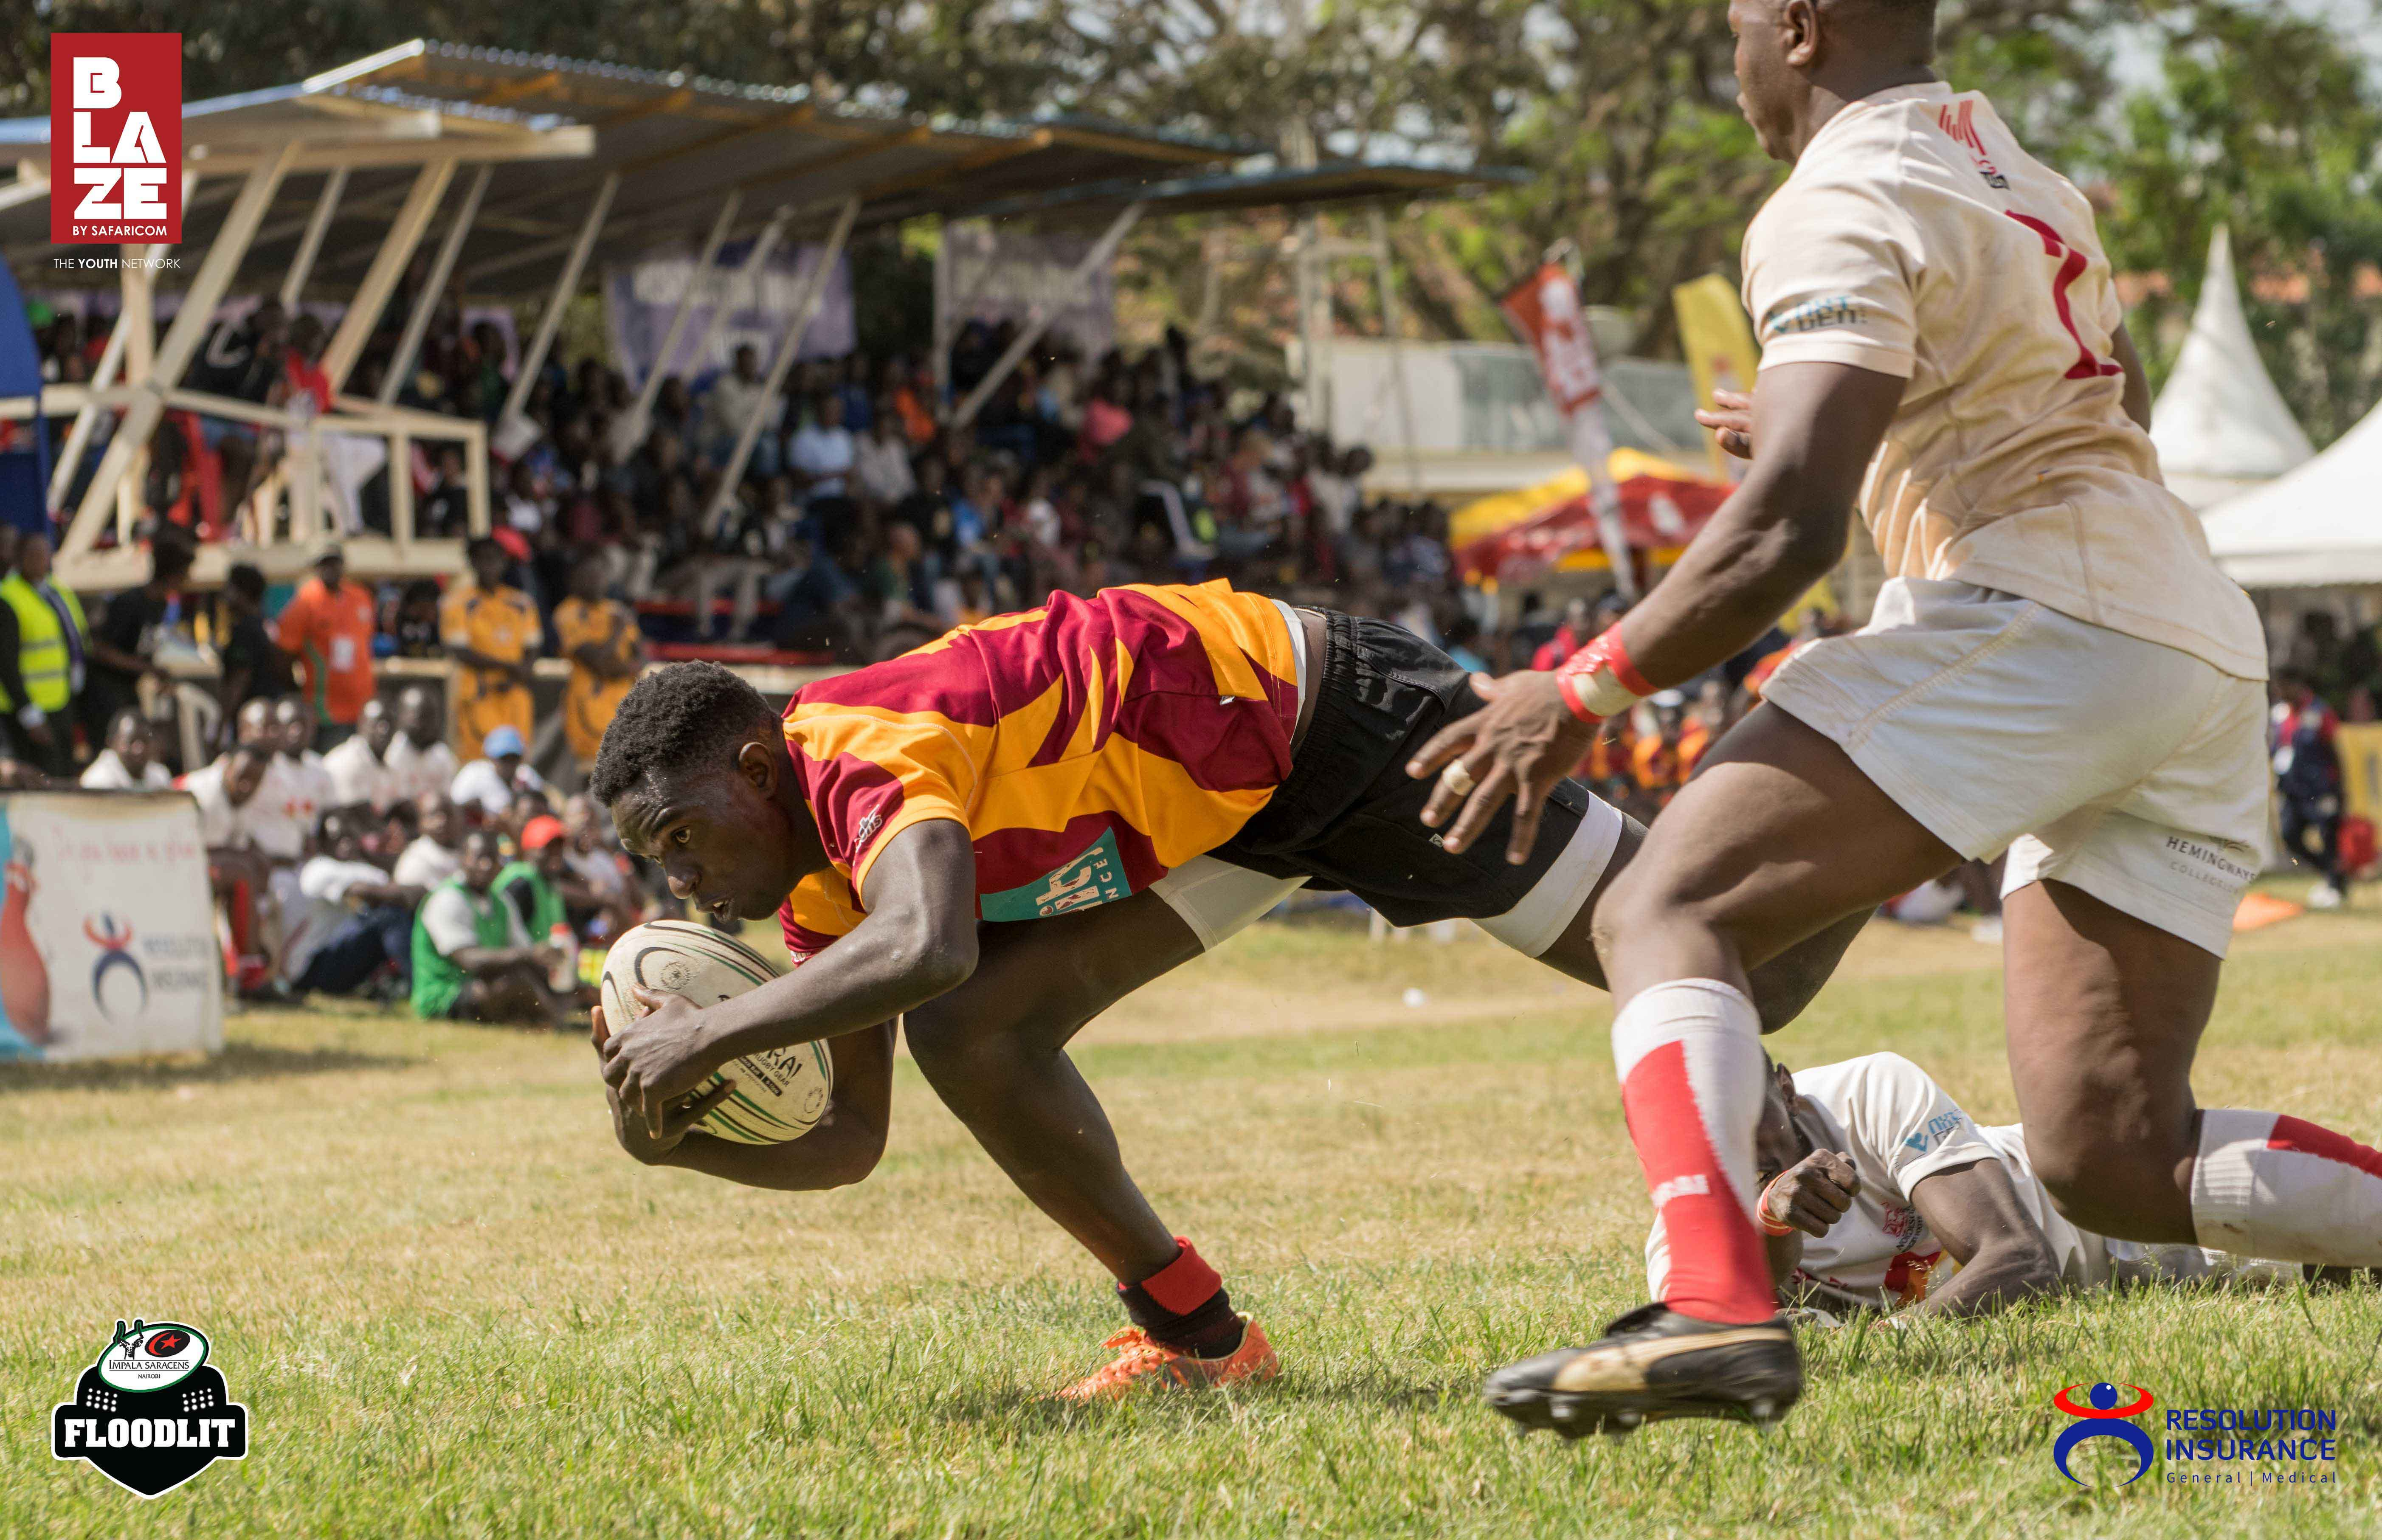 Lionel Ajeliti of Blakblad diving in for a try during their semi-final fixture against Nondies.